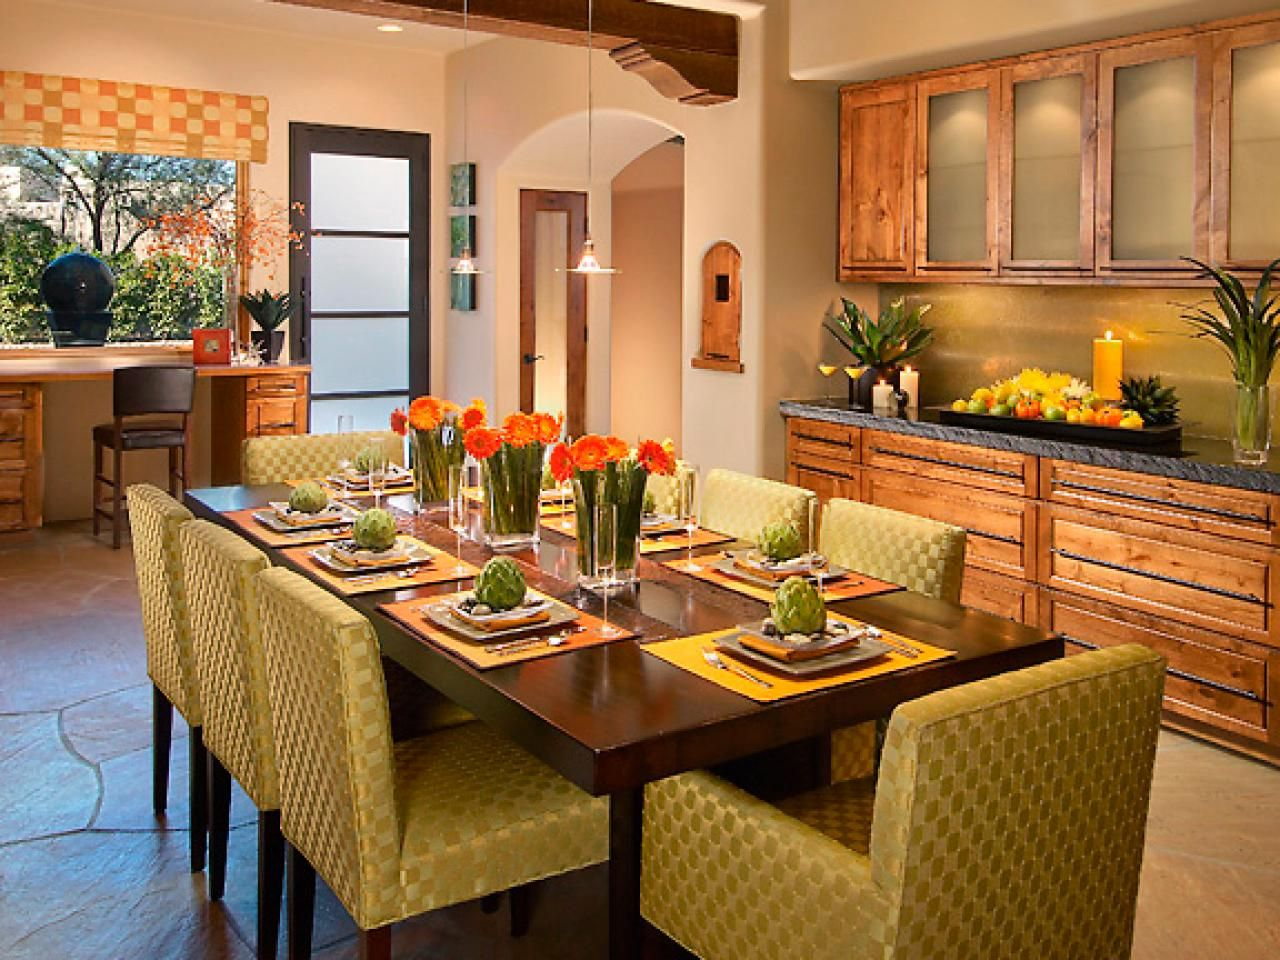 Familystyle Kitchens  Kitchen Pictures Remodeled Kitchens And Hgtv Fair Islands Dining Room 2018